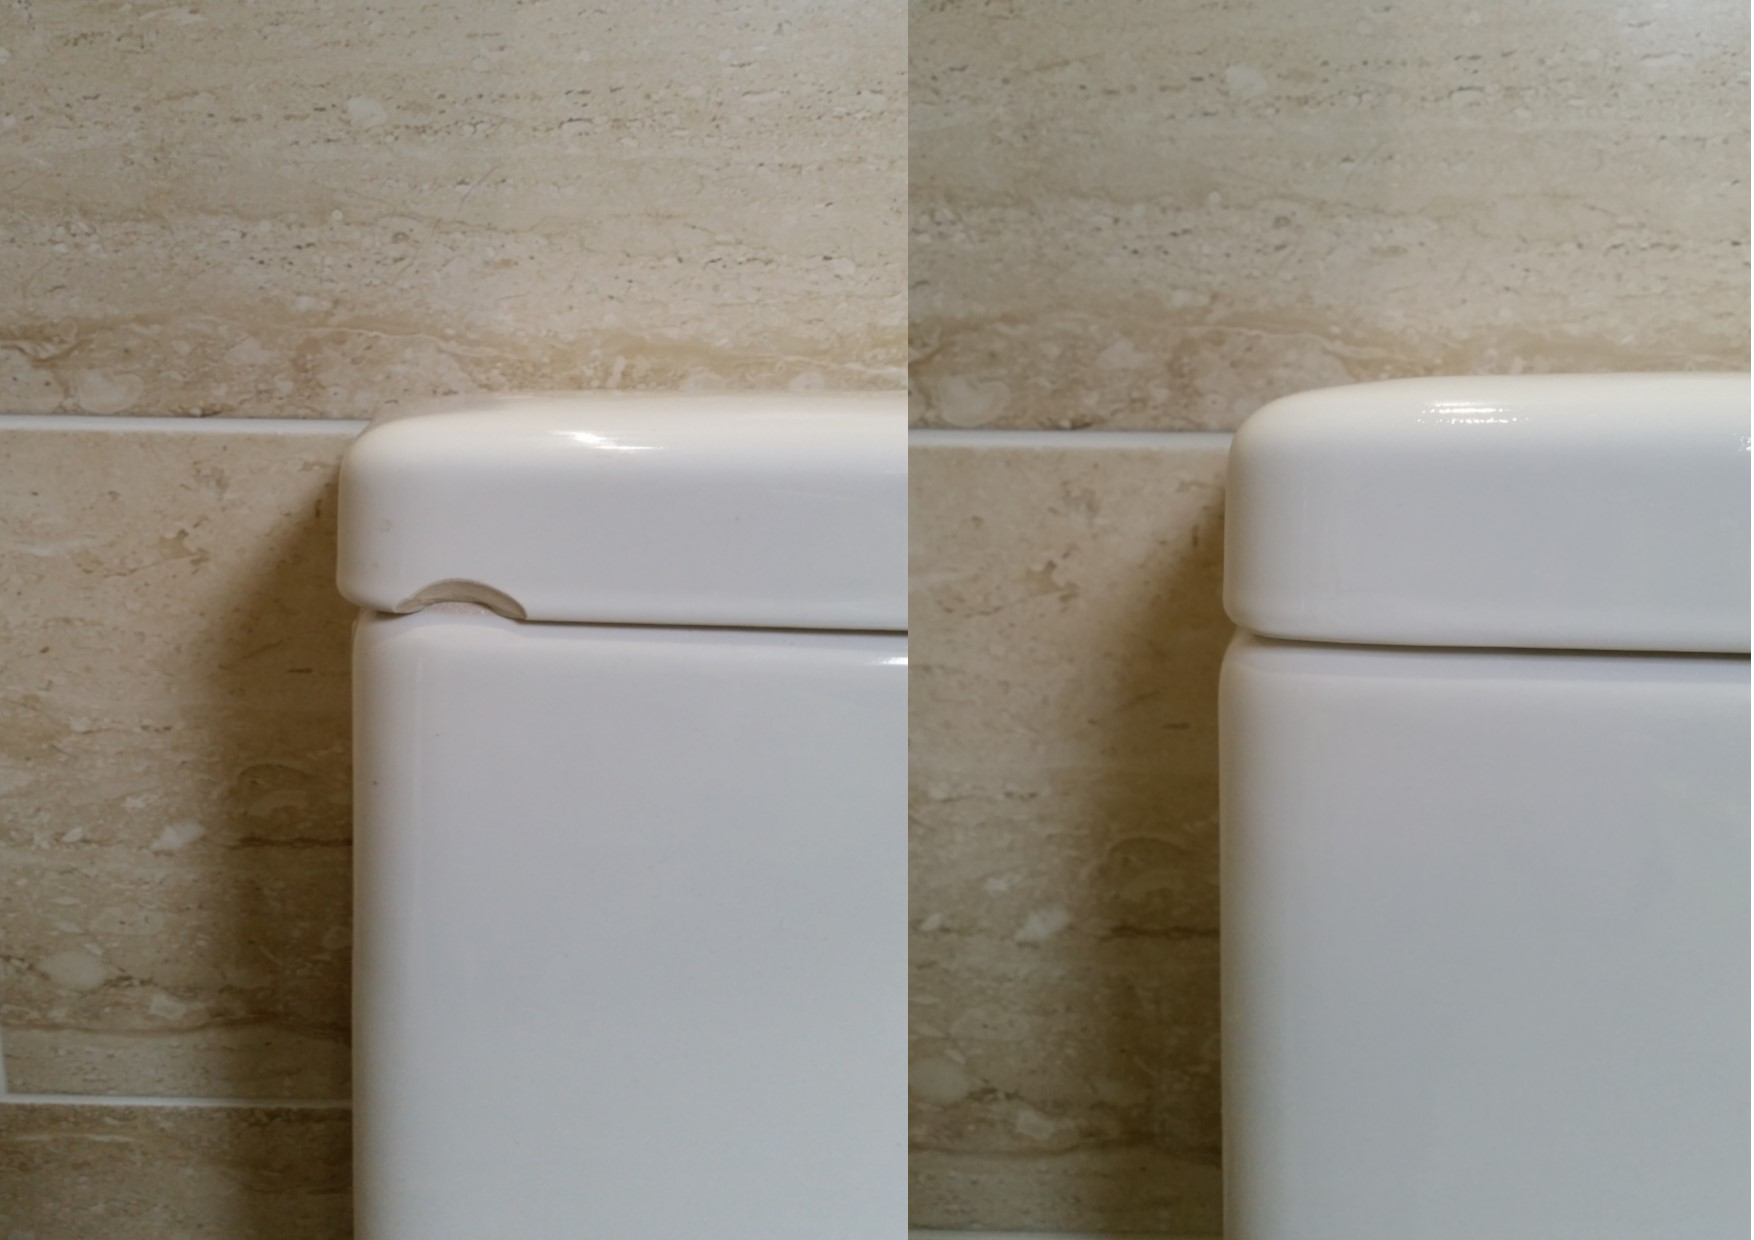 Superbe CHIPPED PORCELAIN SINK AND TOILET CISTERN REPAIRS